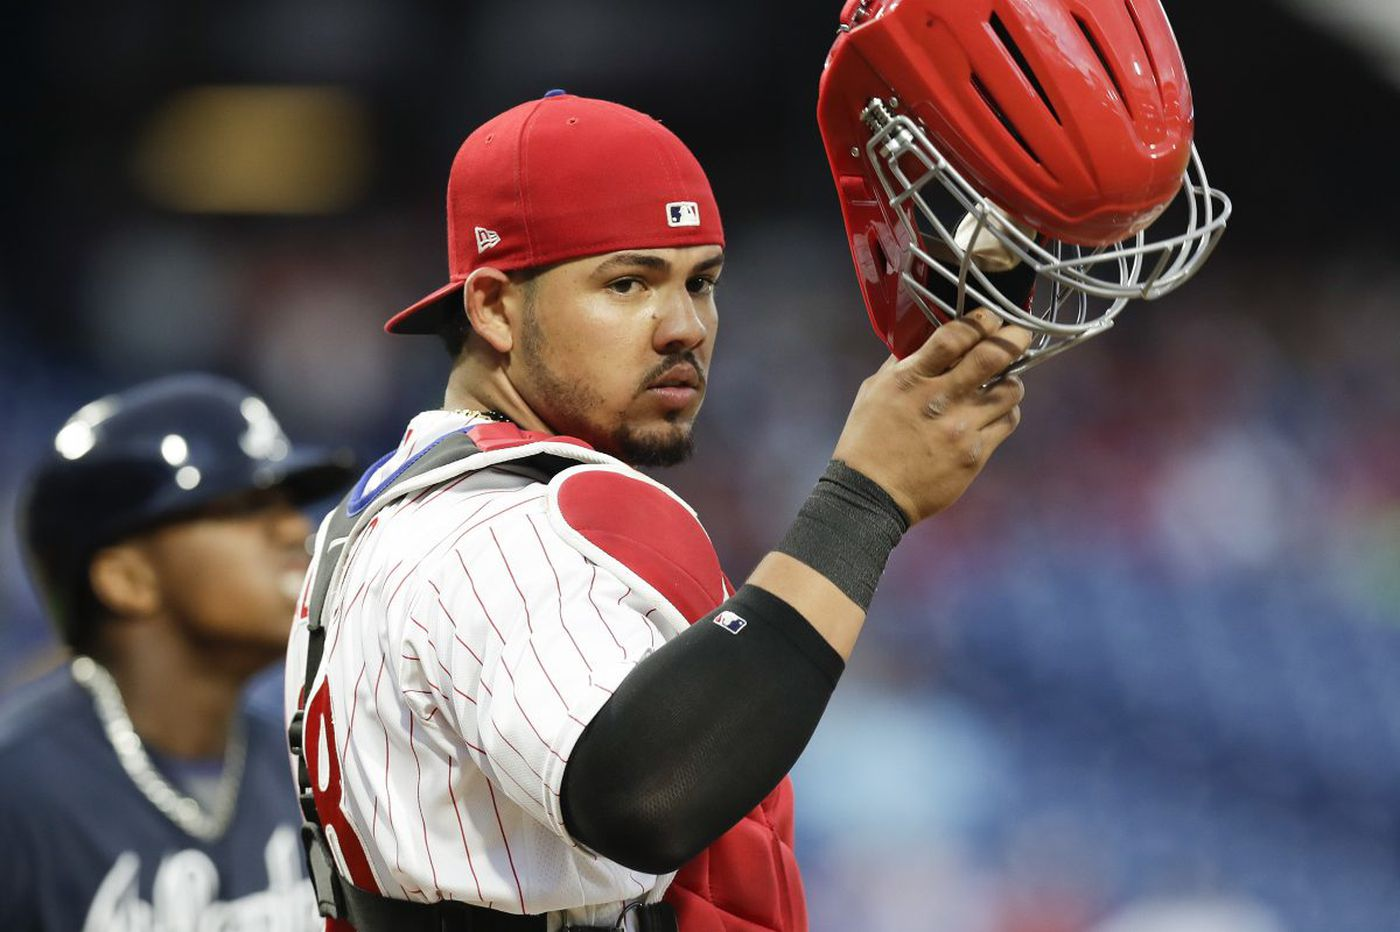 Jorge Alfaro's presence behind the plate boosting Phillies | Scott Lauber